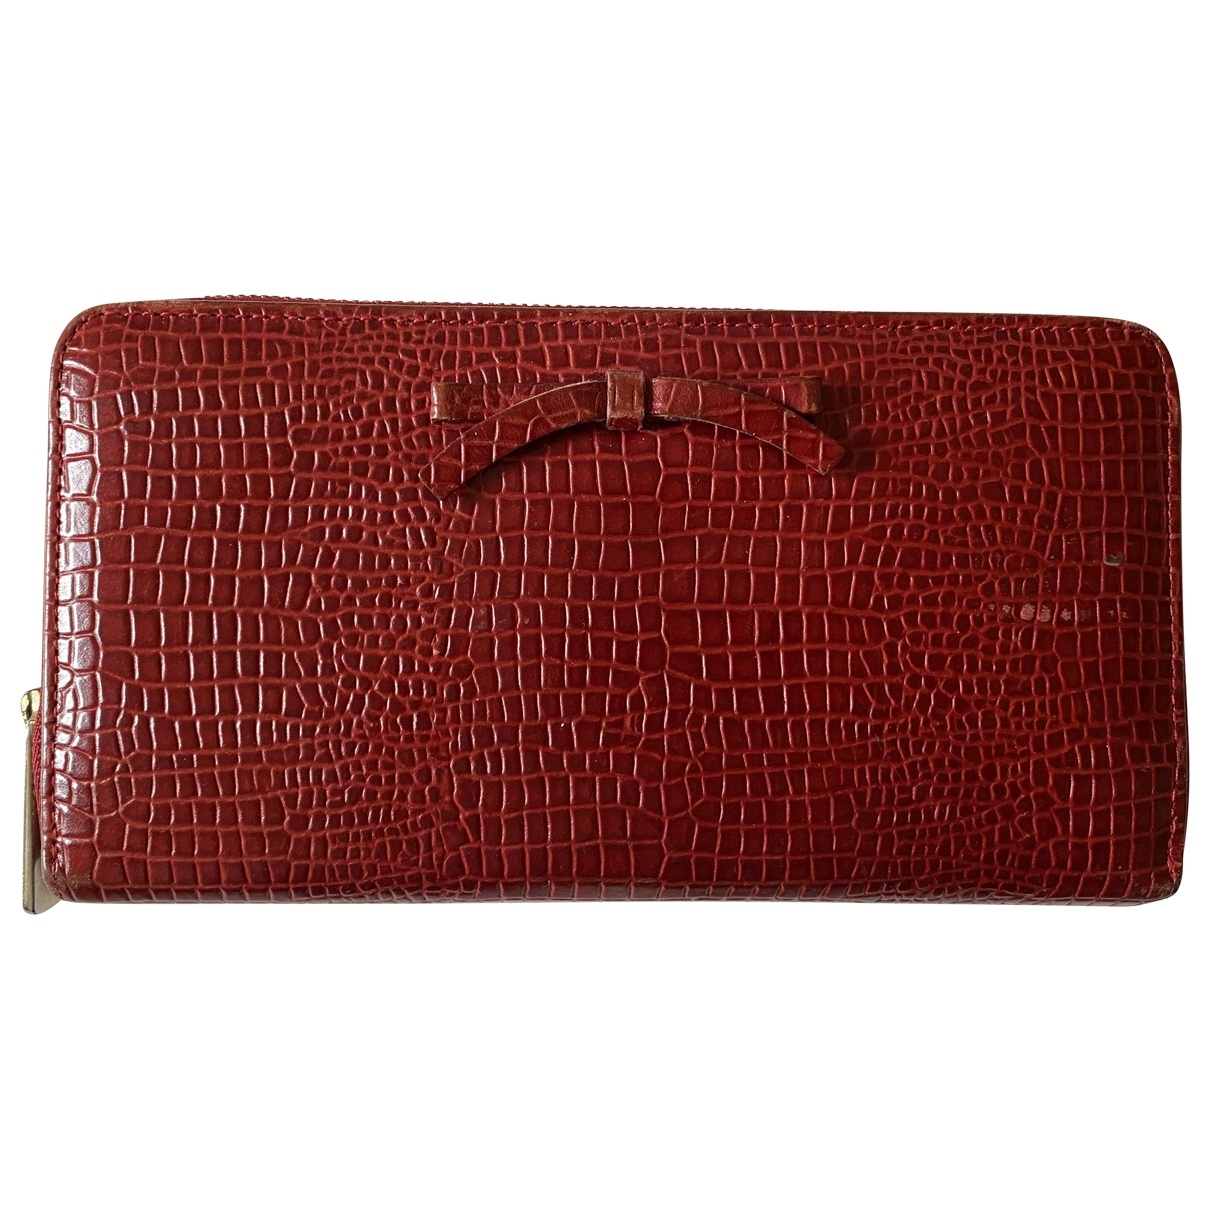 Emporio Armani \N Red Leather wallet for Women \N